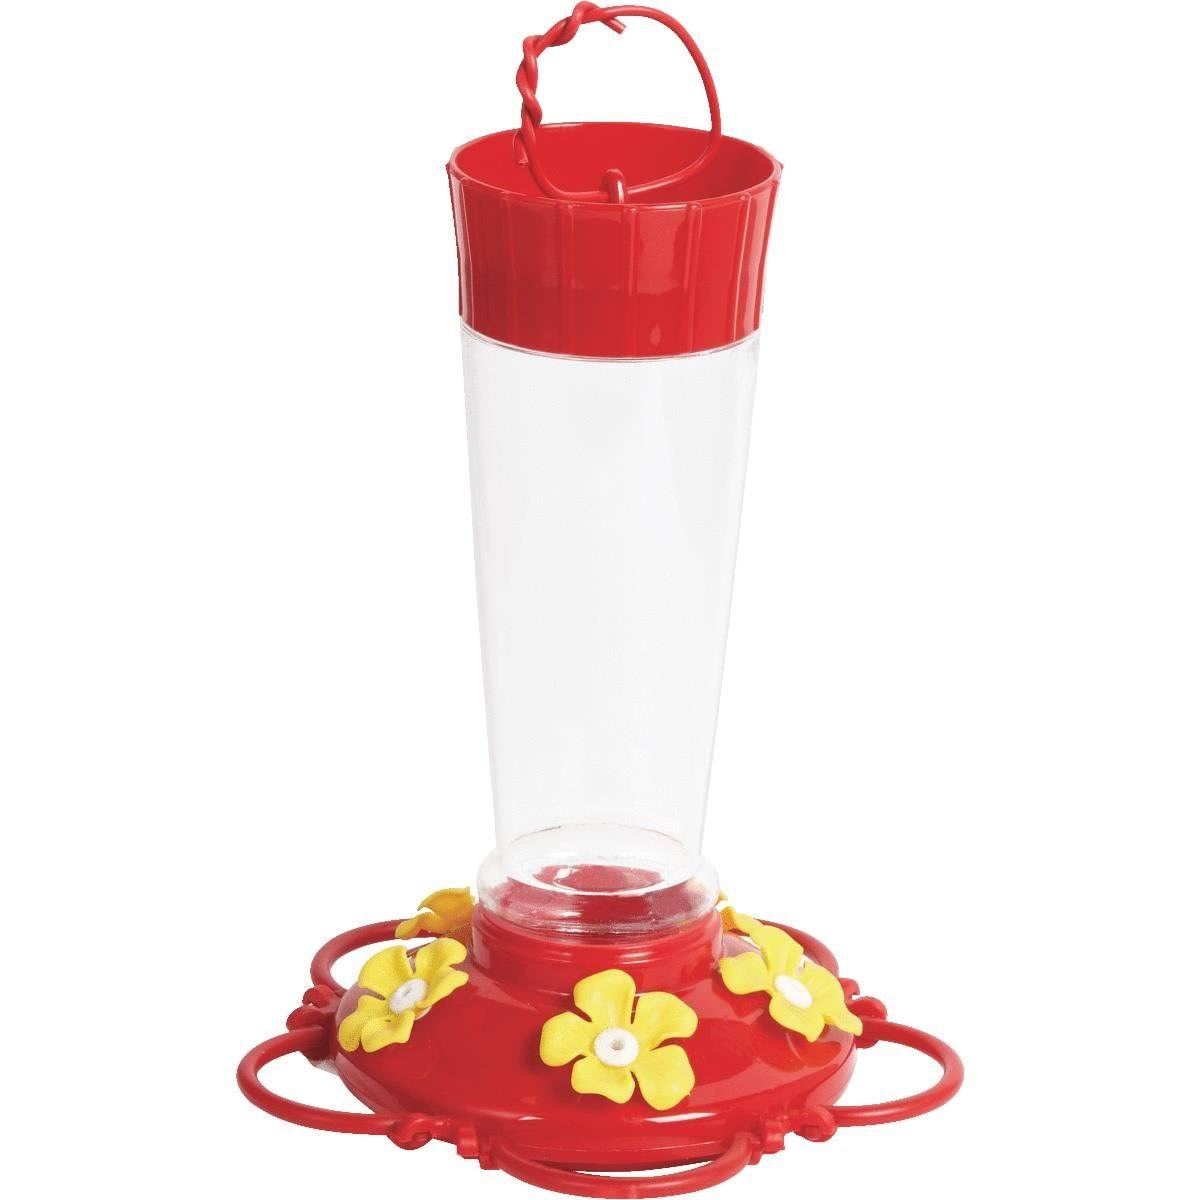 Best Garden Plastic Hummingbird Feeder - 10oz